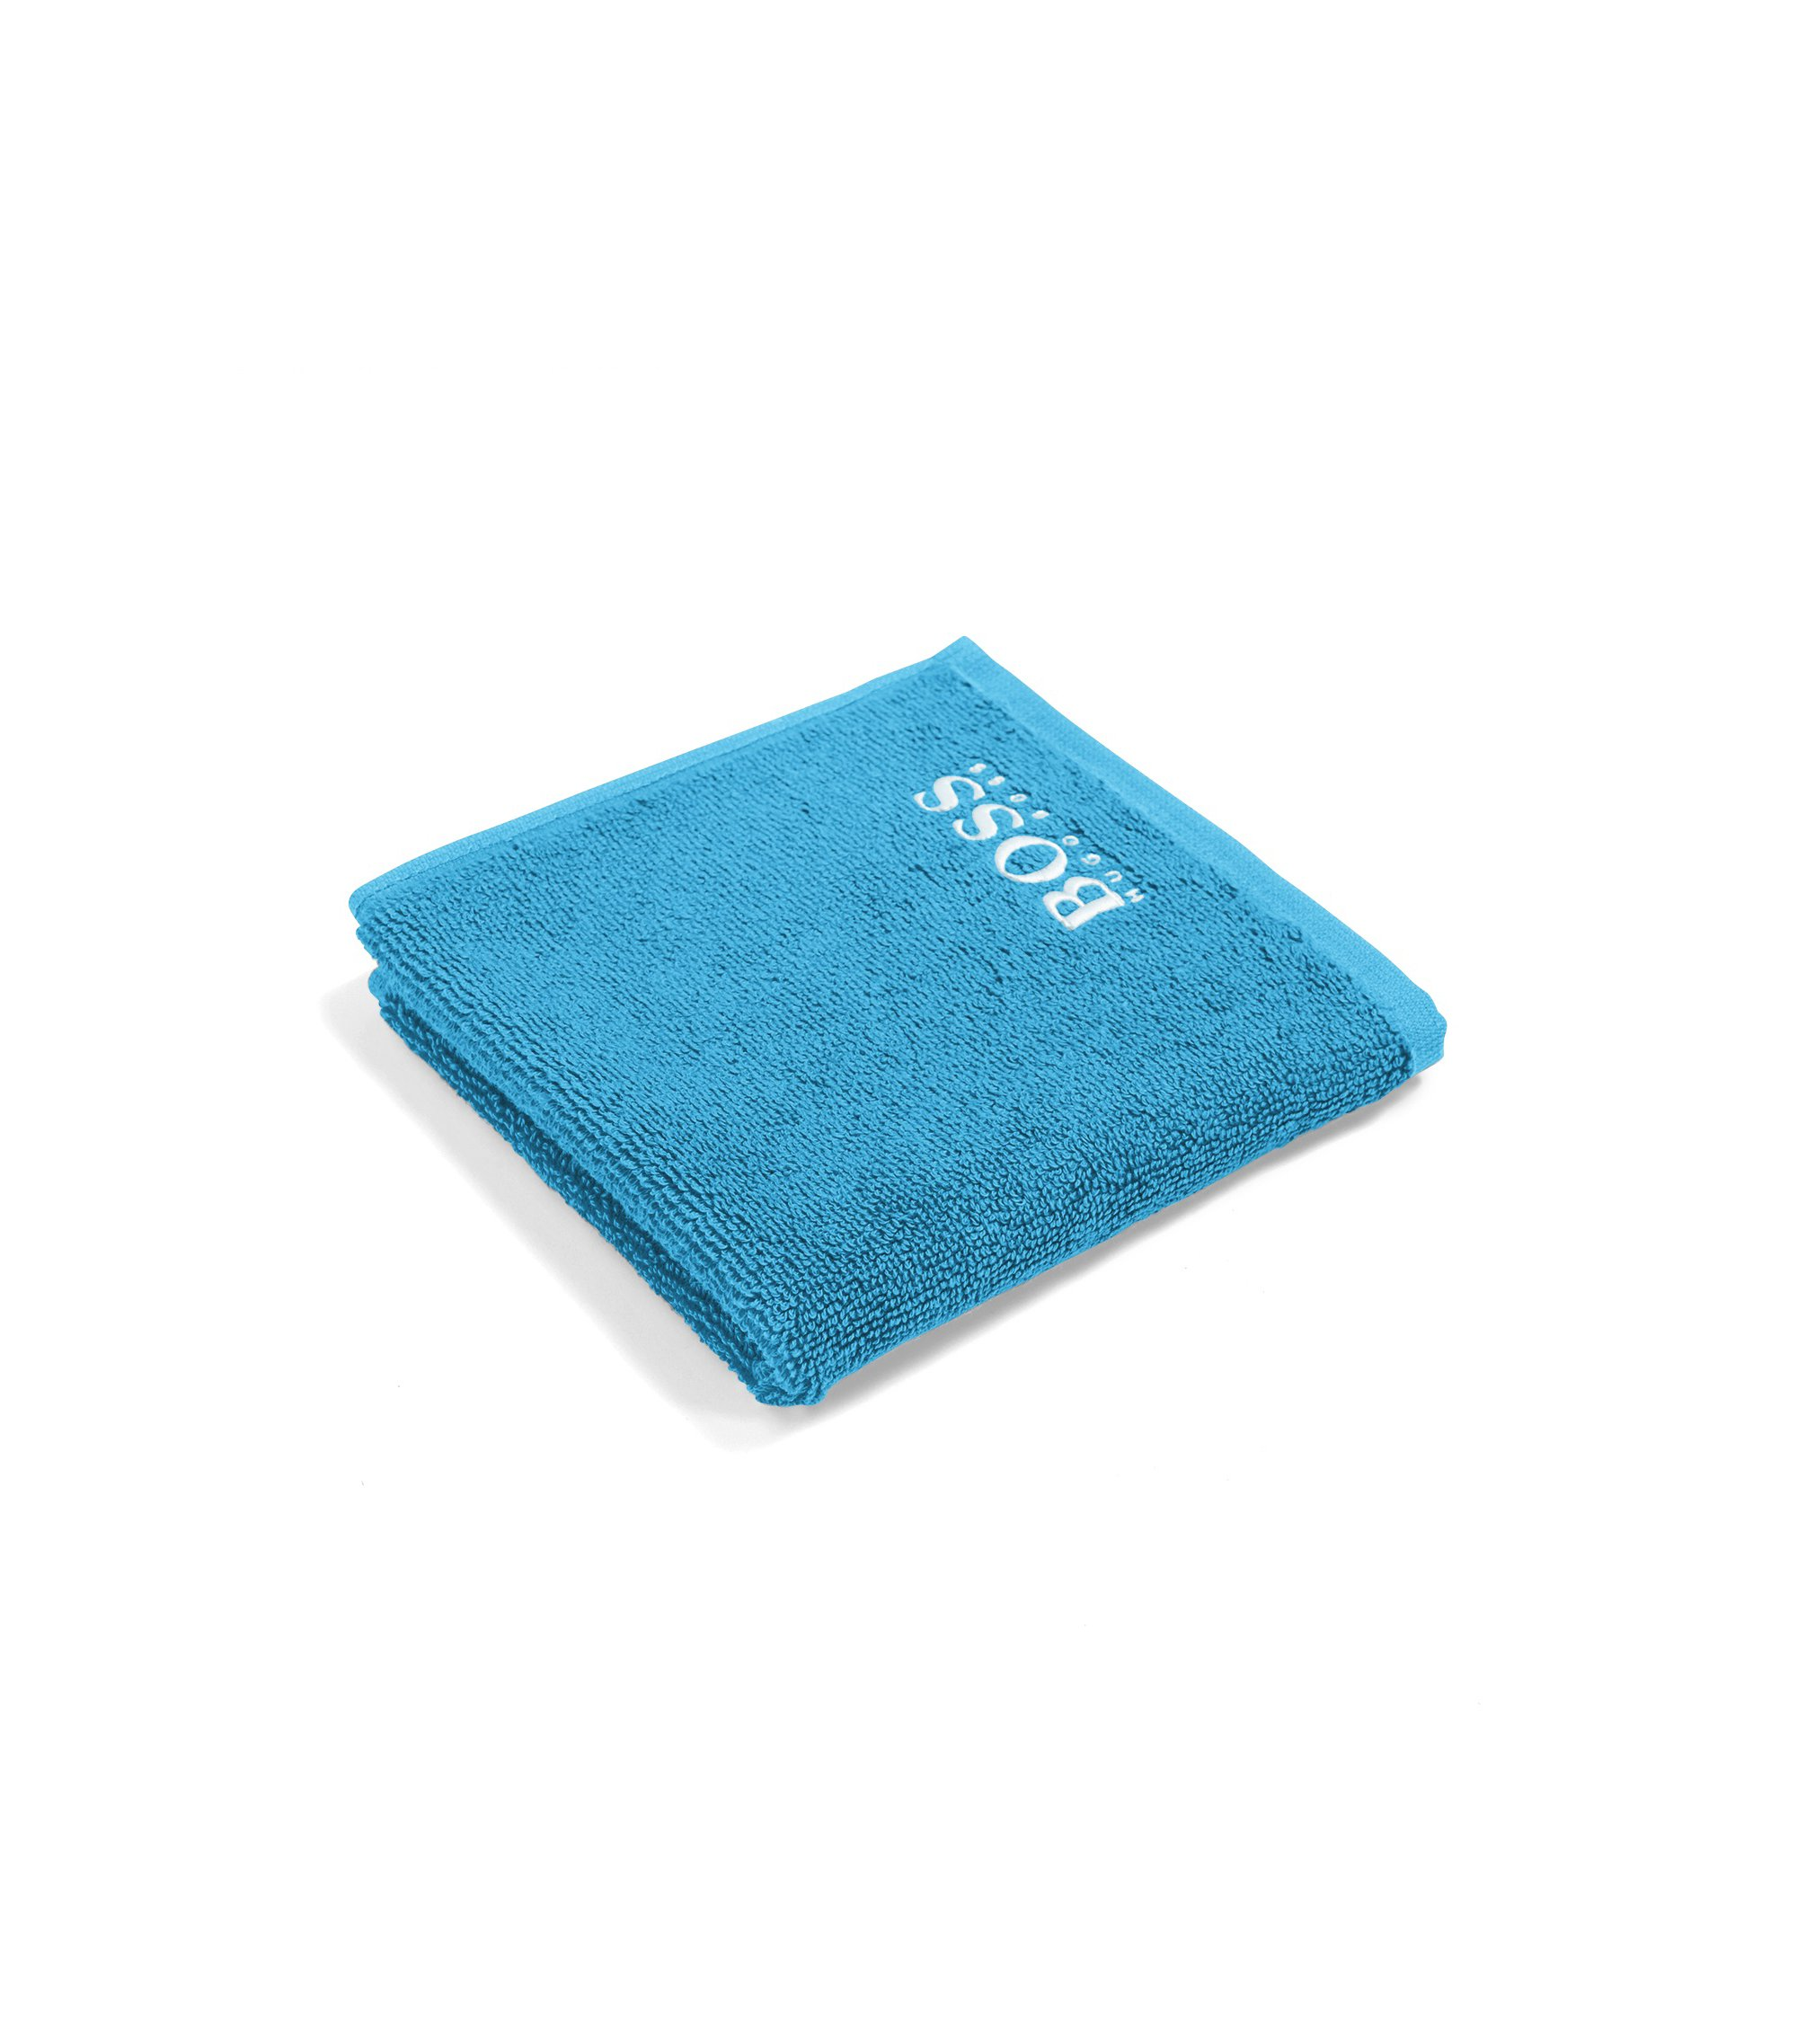 Finest Egyptian cotton face cloth with logo embroidery, Blue